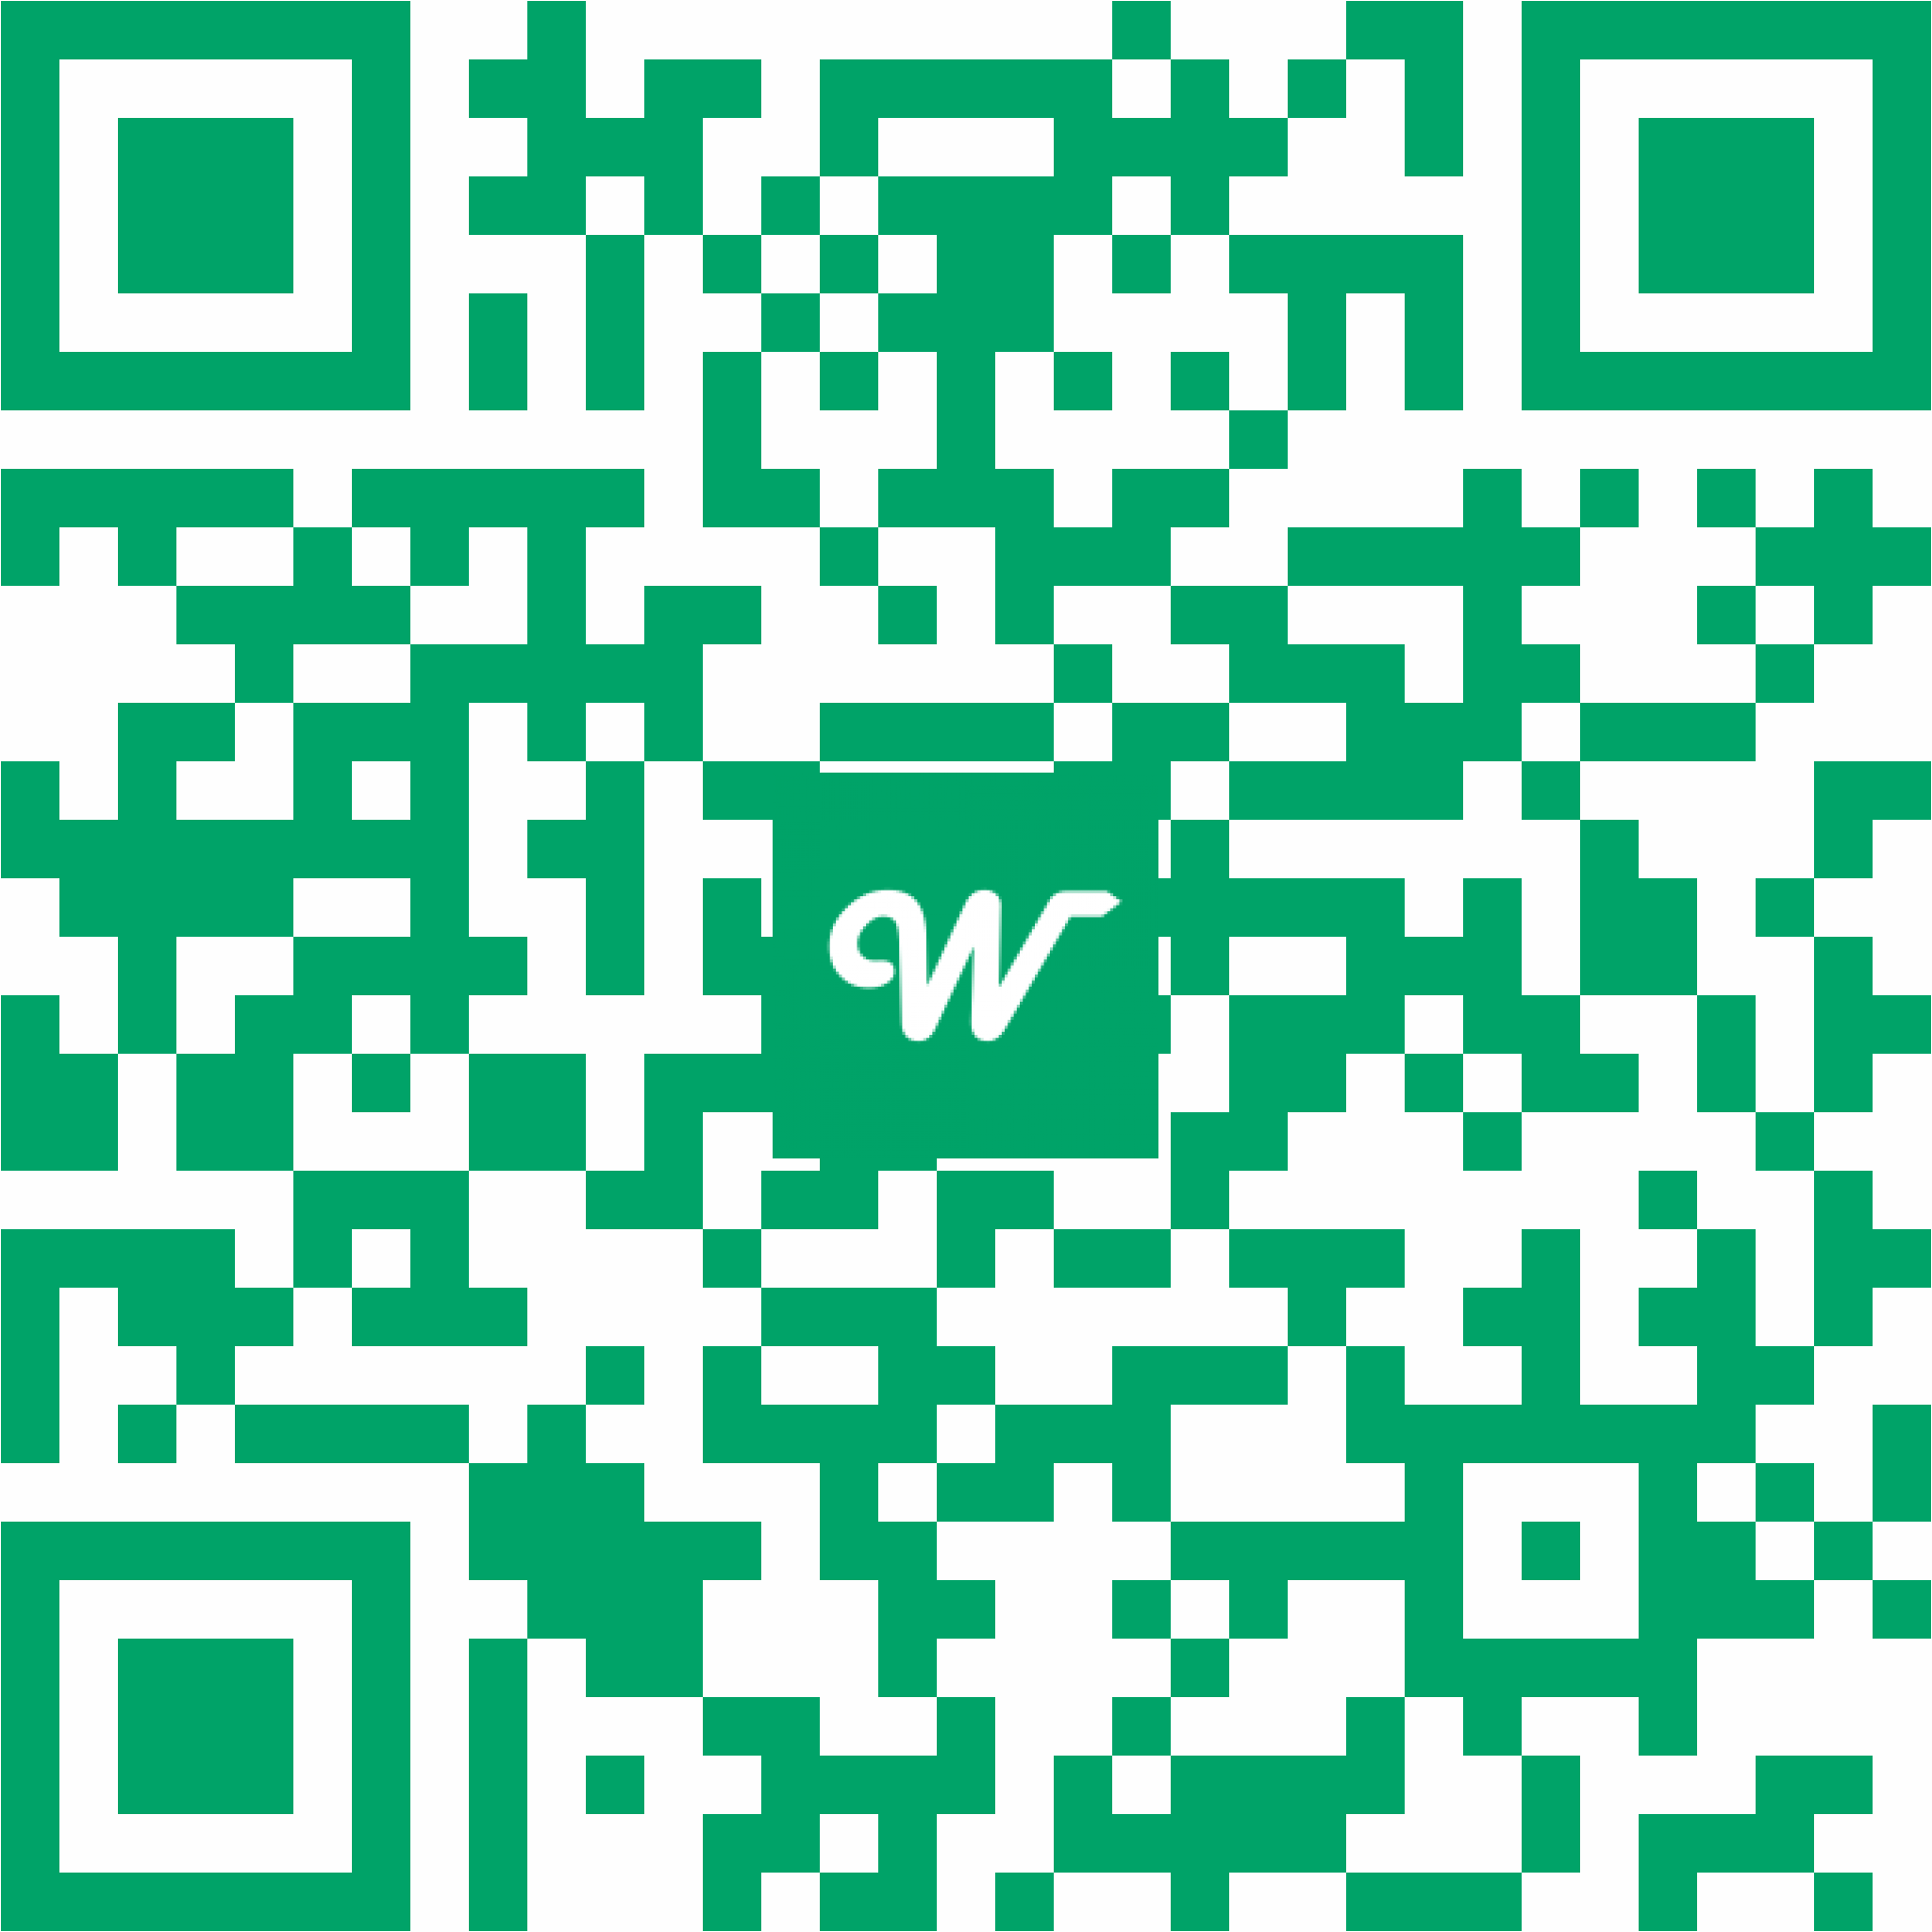 Printable QR code for Paddy's Loft